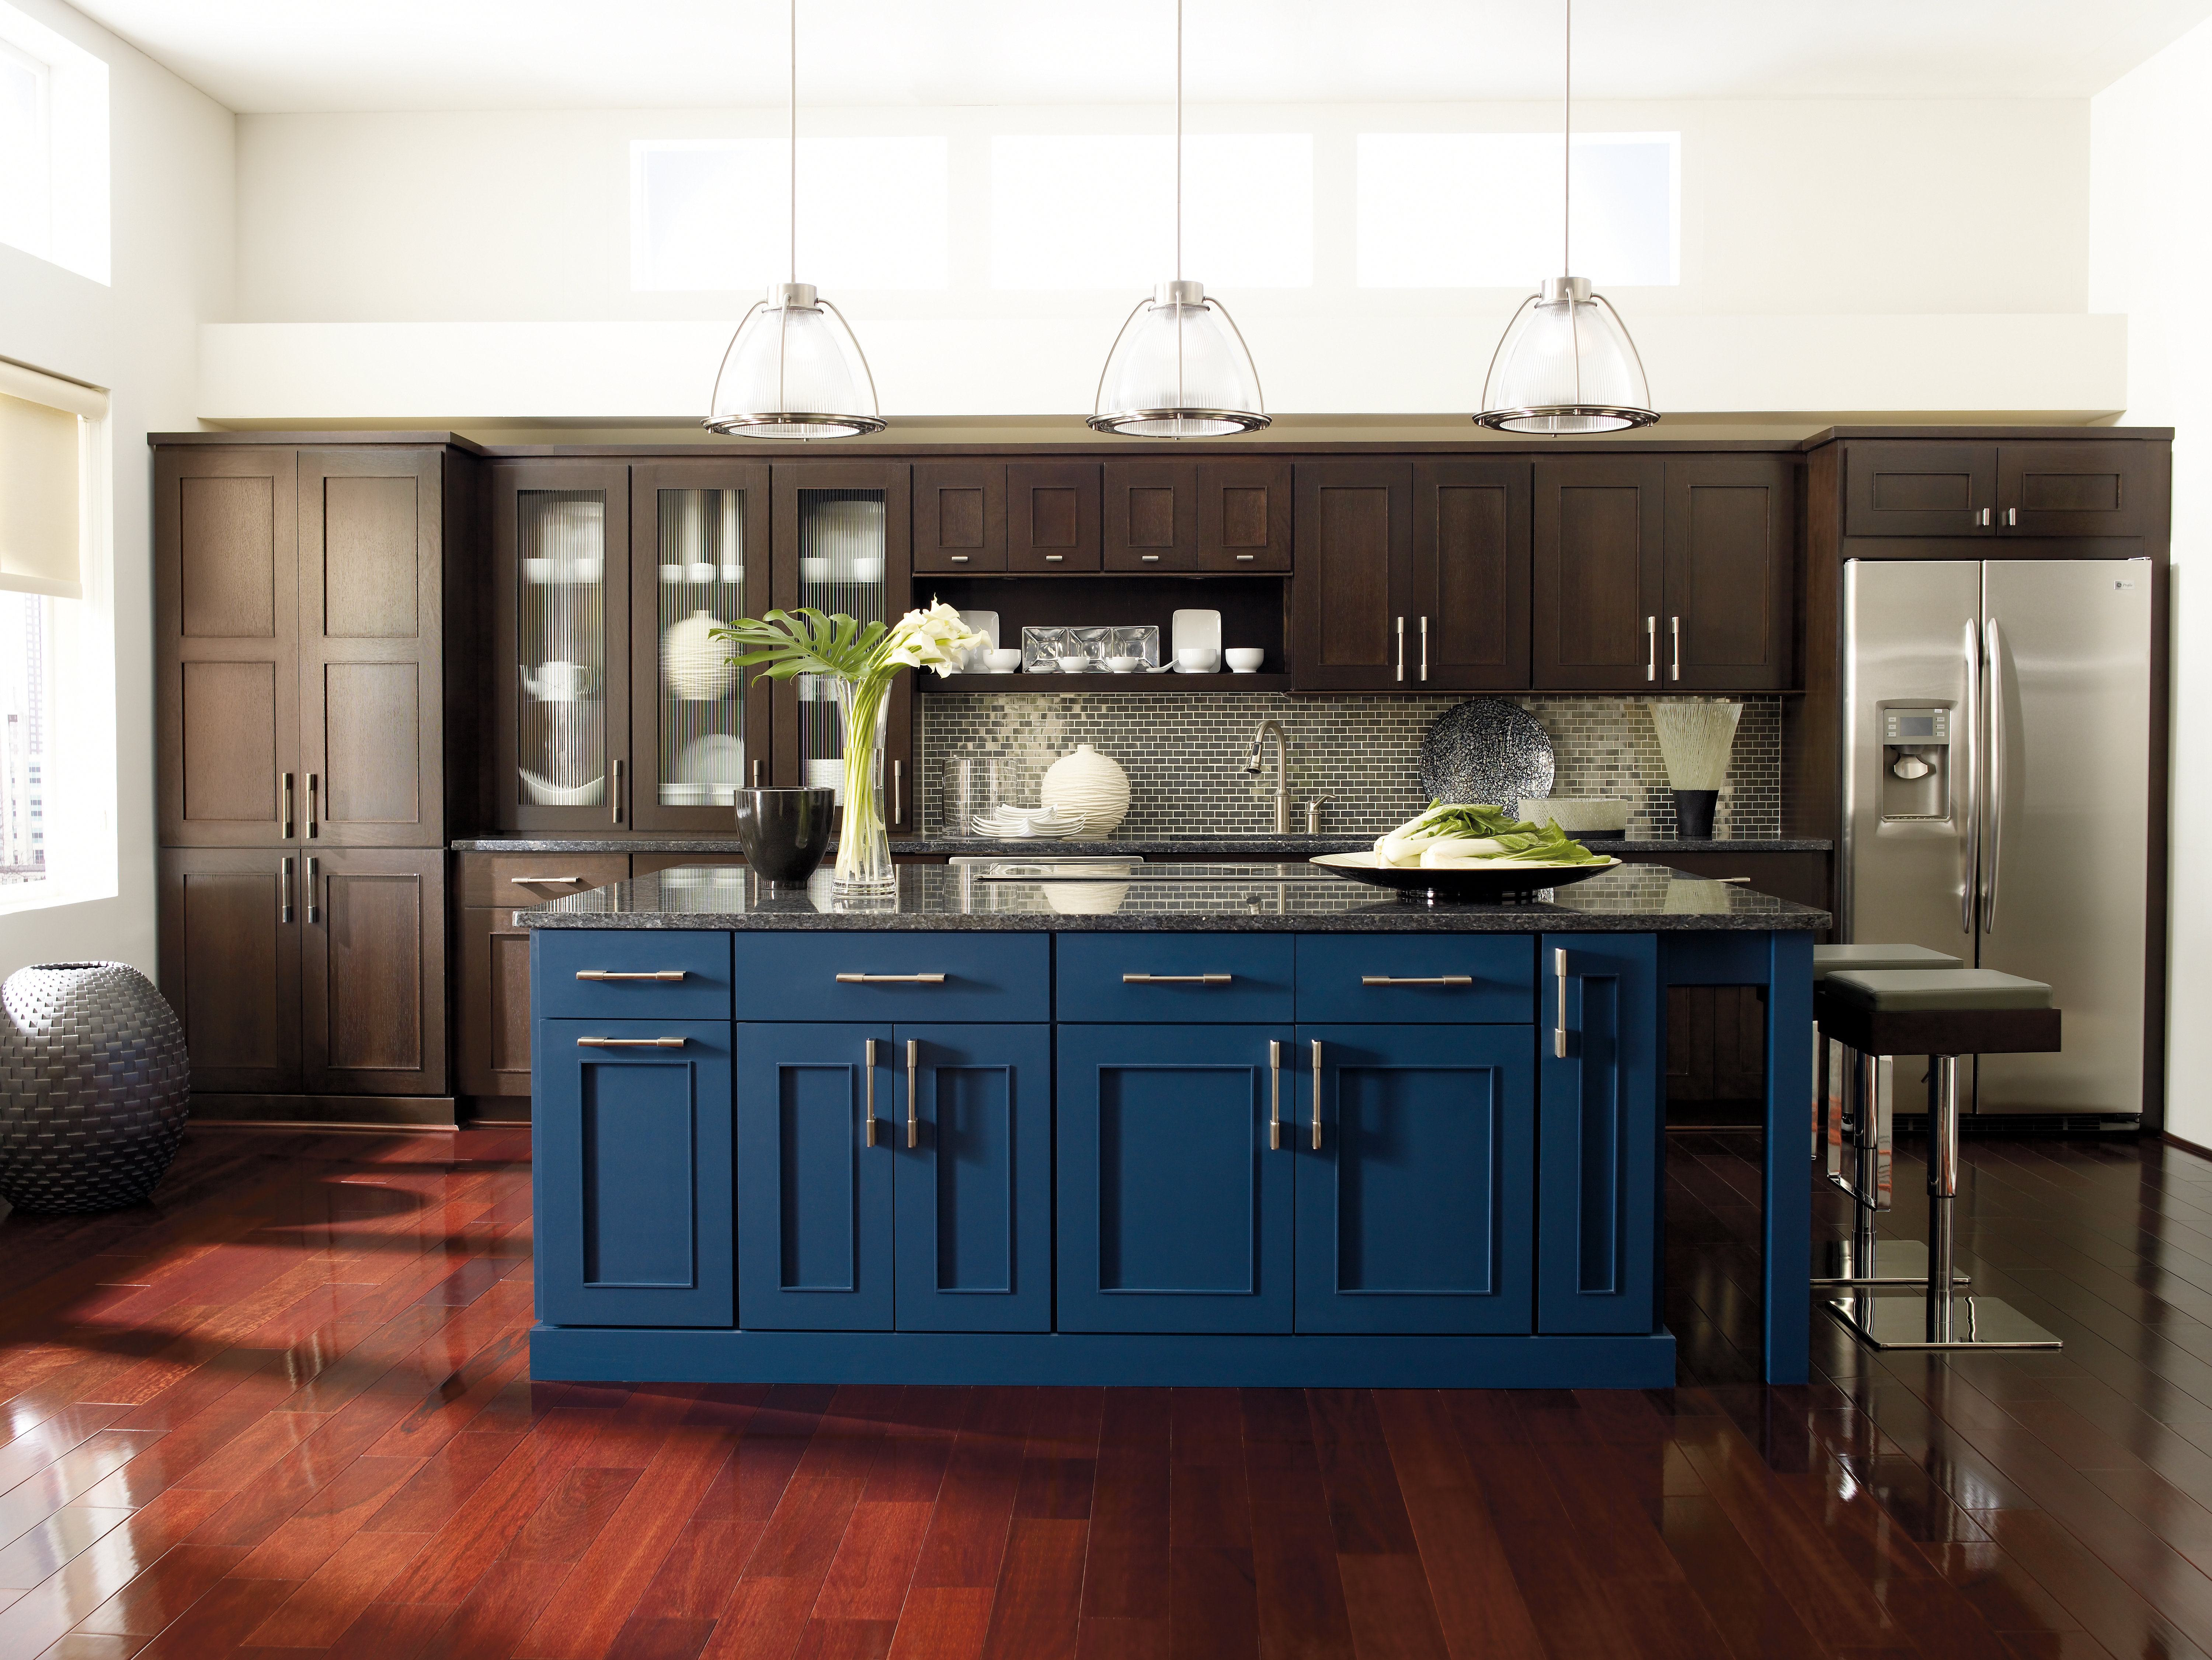 pantry az door interior scottsdale cabinet sale home cabinets nj choice and image down glass cheap pull with store affordable semi kitchen for local doors faucets custom maxresdefault commercial rta